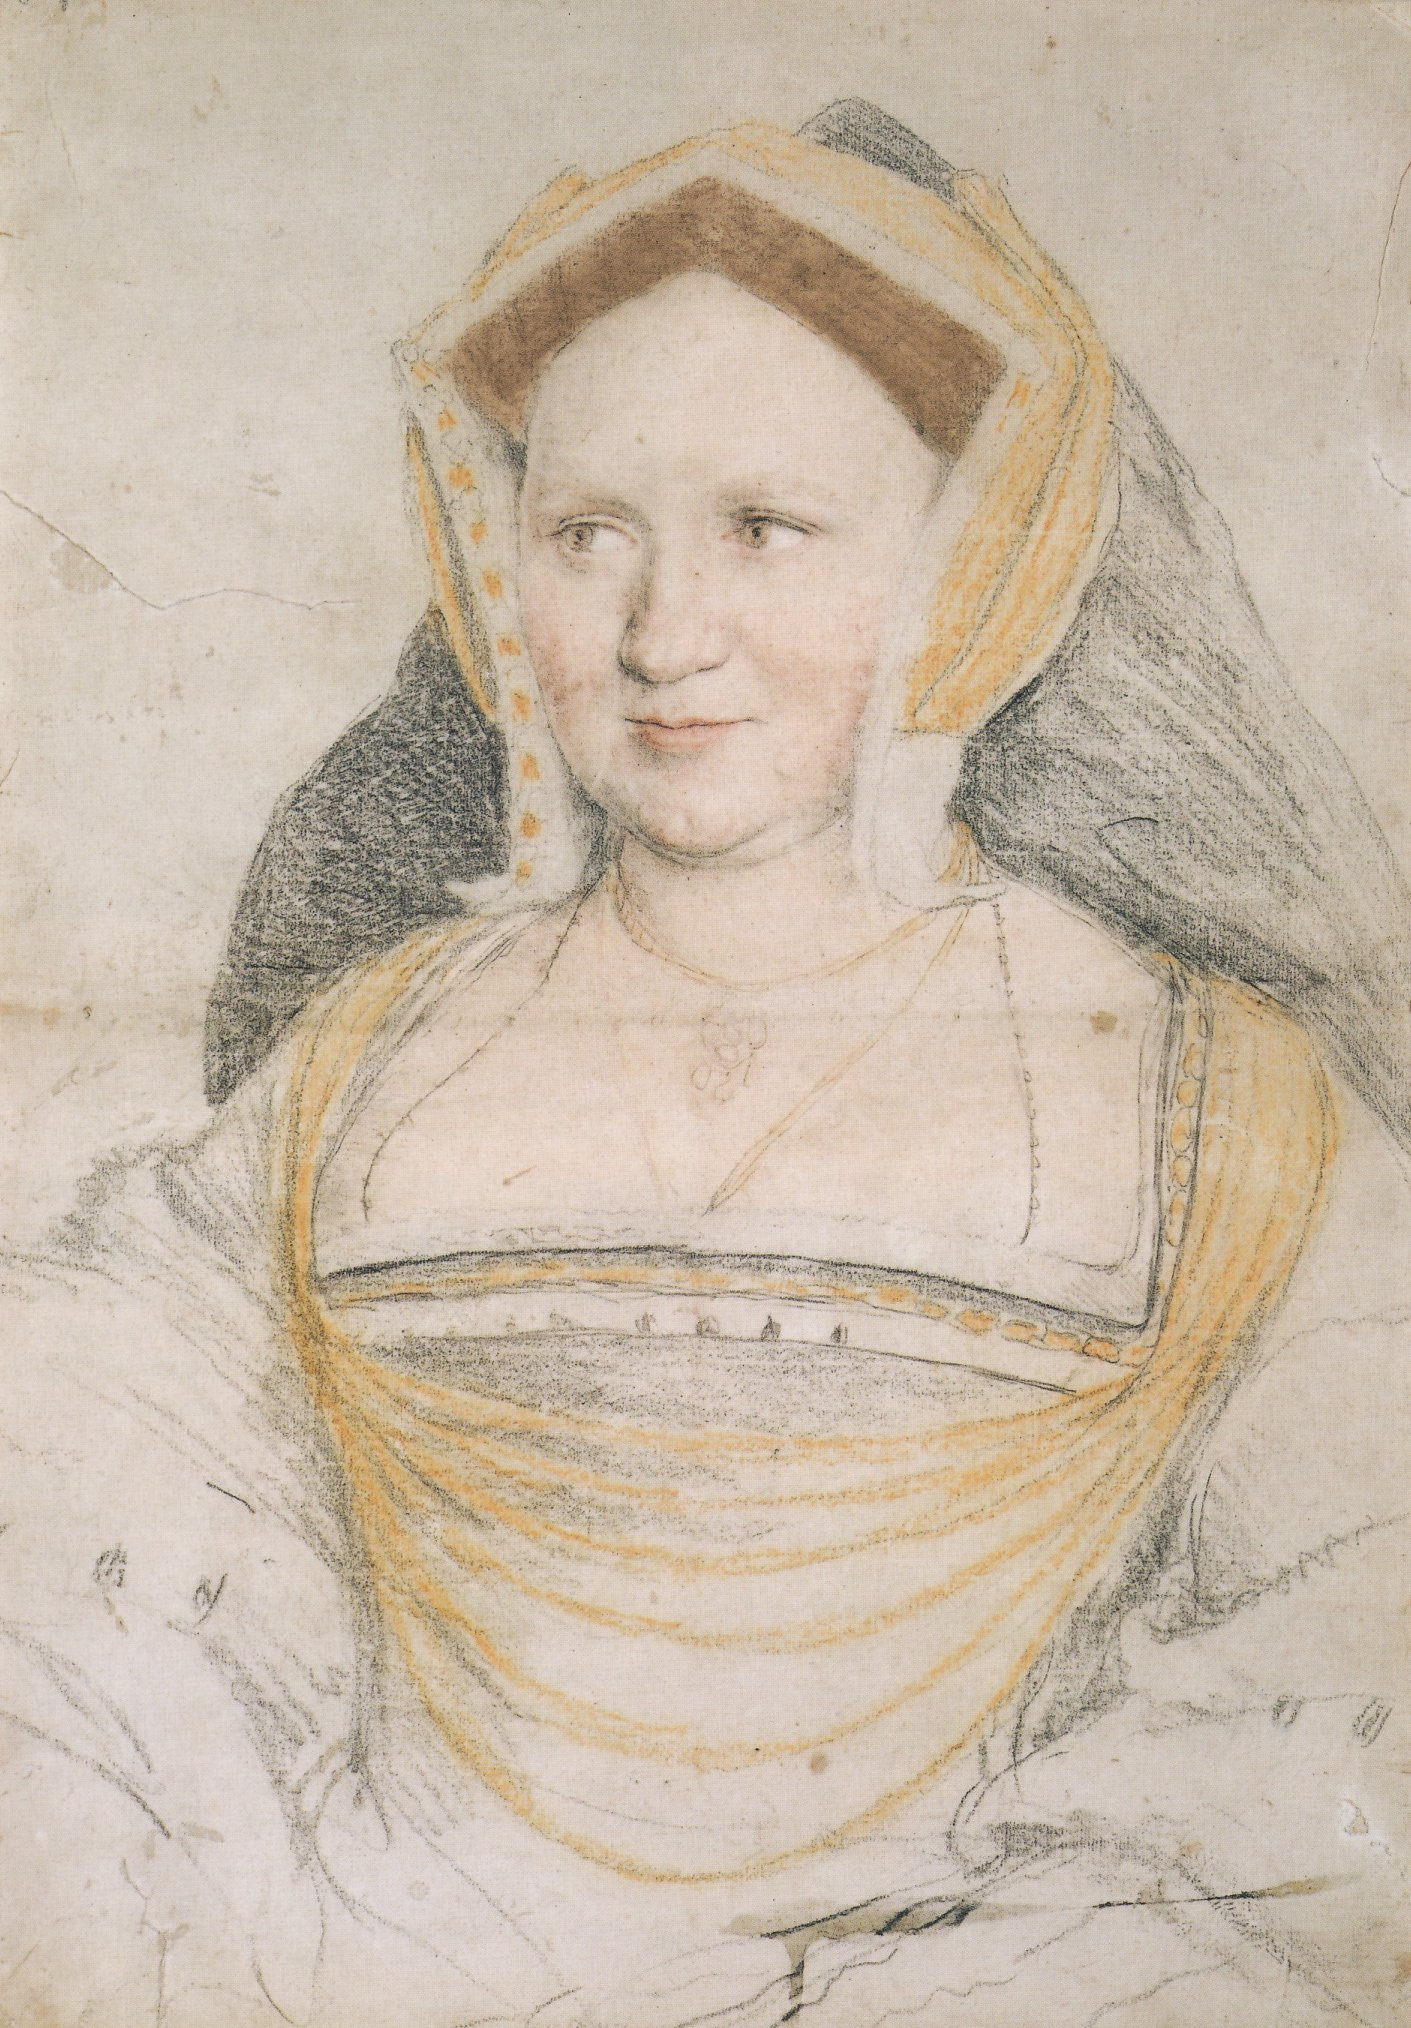 Portrait study of Mary, Lady Guildford, nee Wotton. 1527